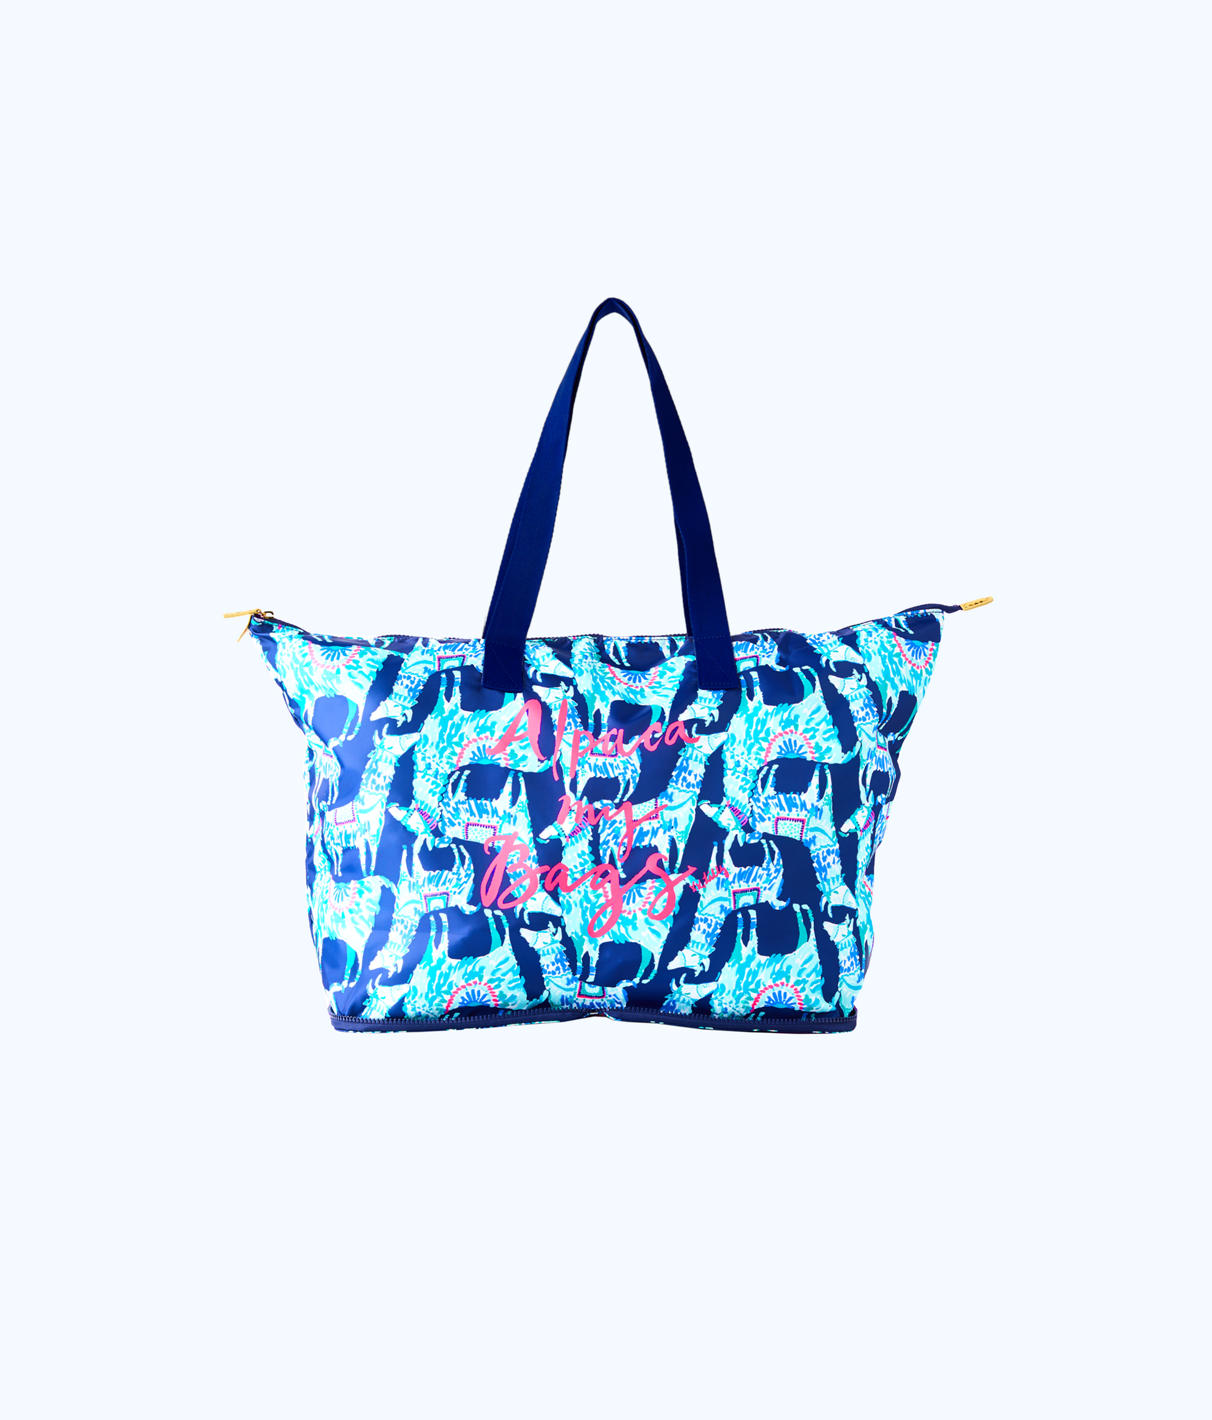 Lilly Pulitzer Lilly Pulitzer Getaway Packable Tote Bag